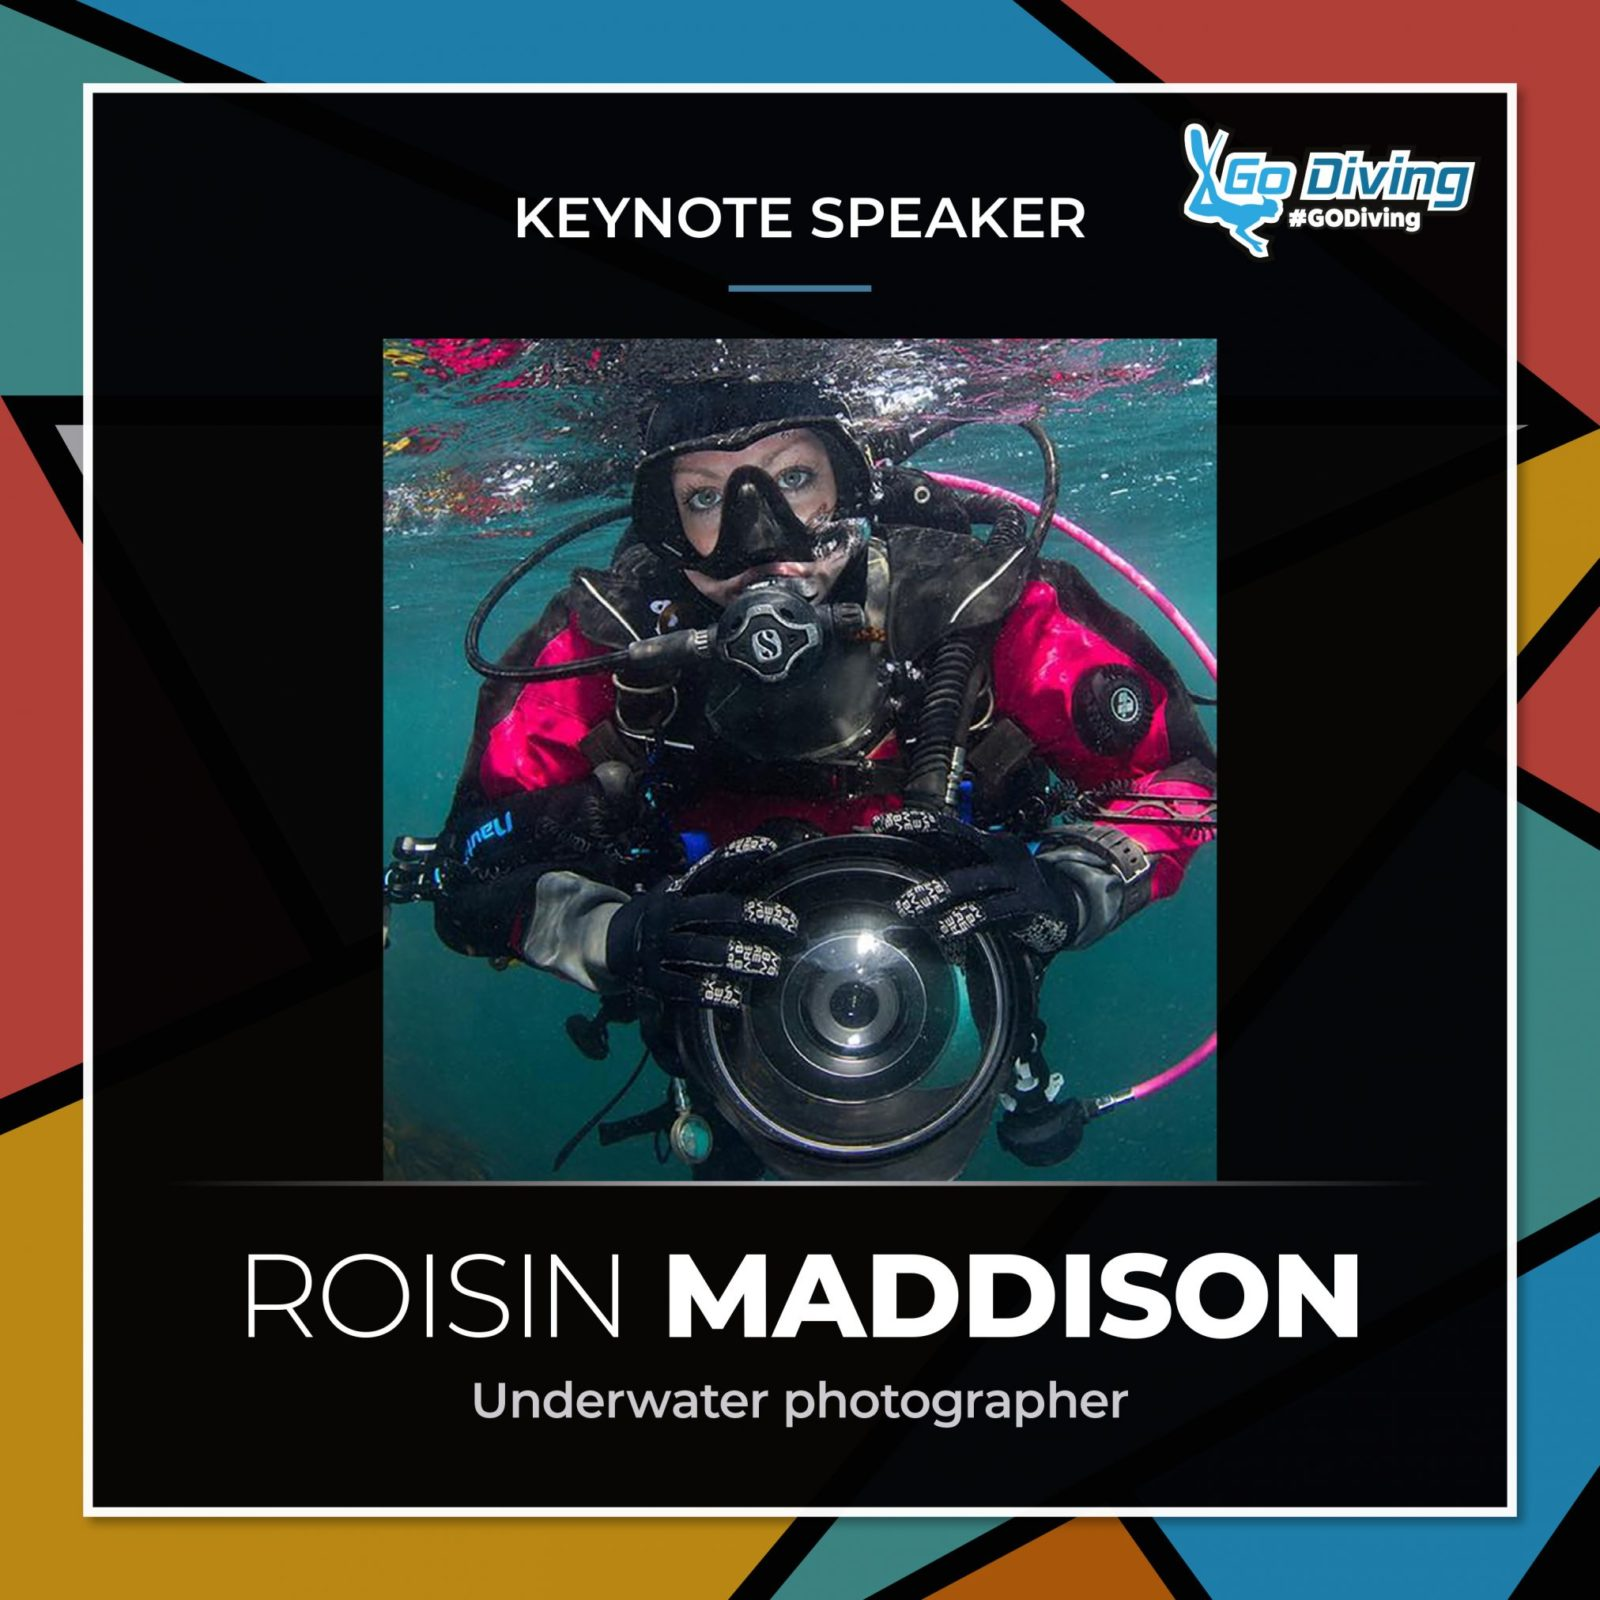 GO Diving Show Speaker Profile - Roisin Maddison 2